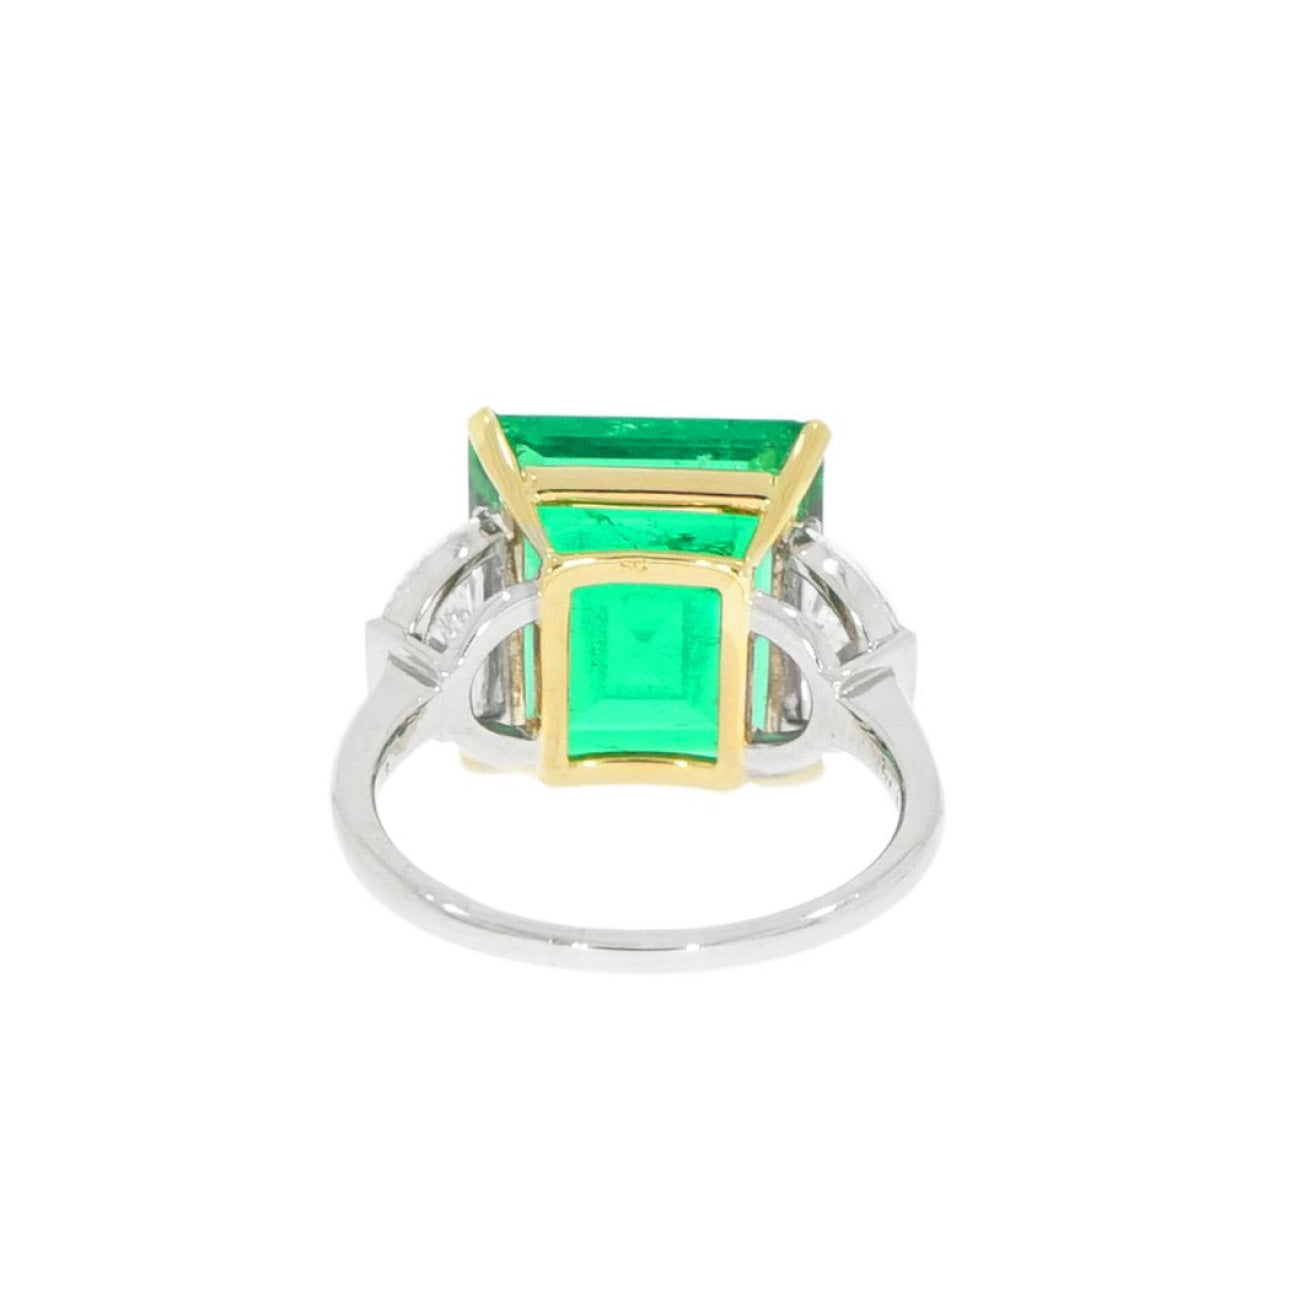 Estate Jewelry Estate Jewelry - Manfredi Jewels Certified 7.43 ct. Colombian Emerald and Diamond Cocktail Ring | Manfredi Jewels